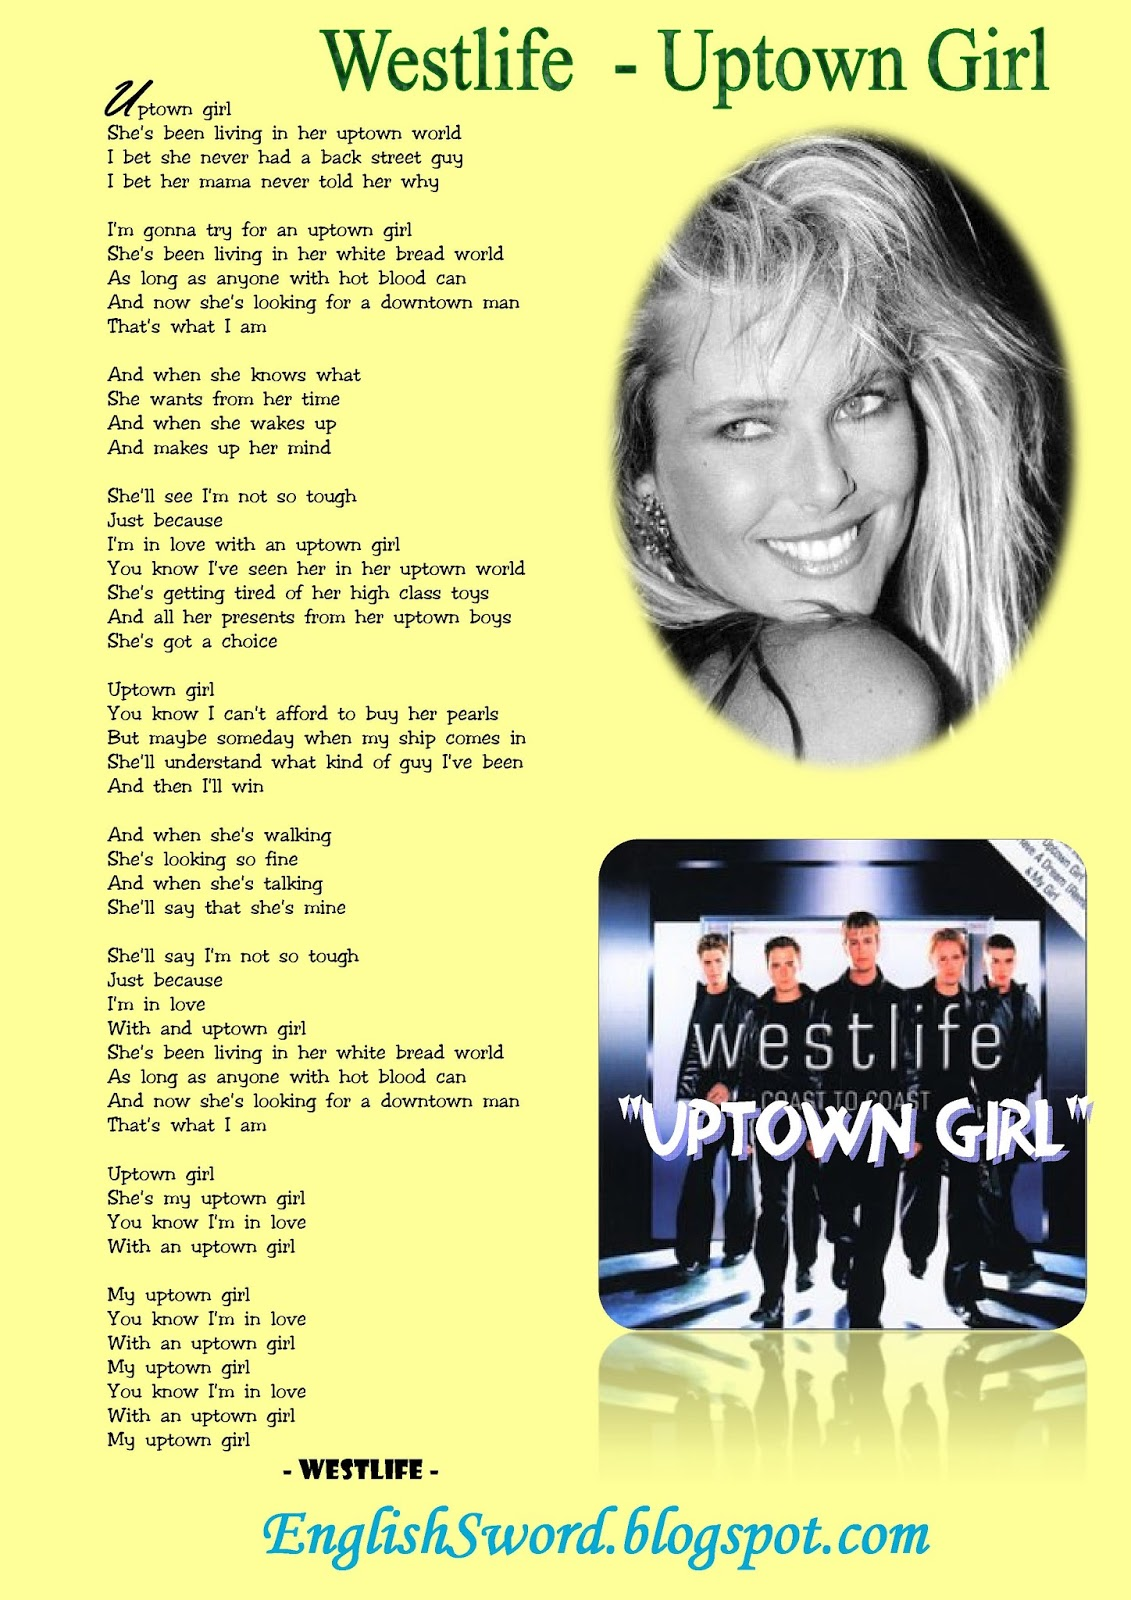 Westlife uptown girl official video lyrics